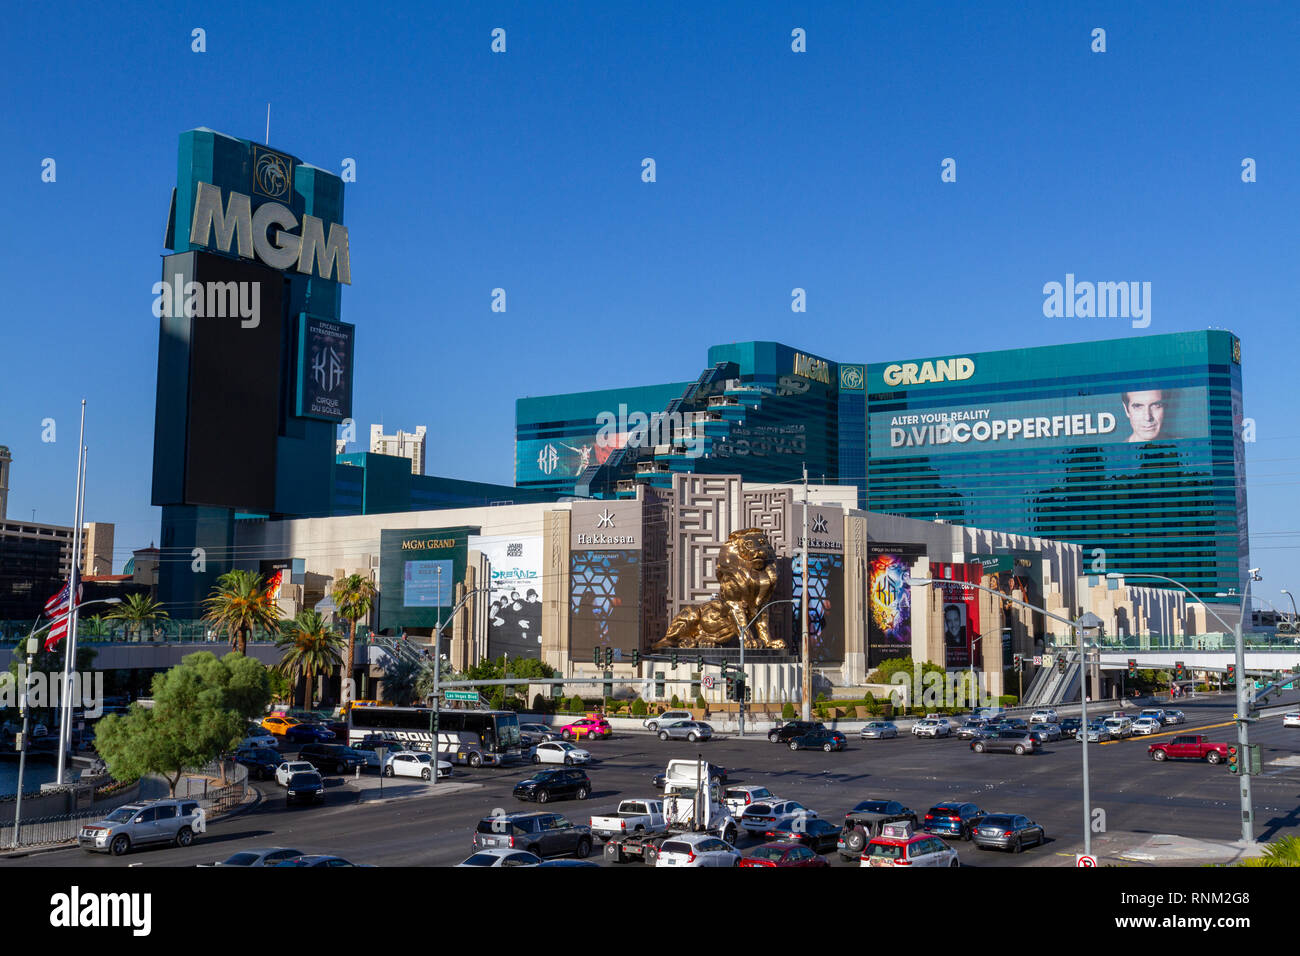 The MGM Grand Hotel, Las Vegas on The Strip in Las Vegas, Nevada, United States. - Stock Image